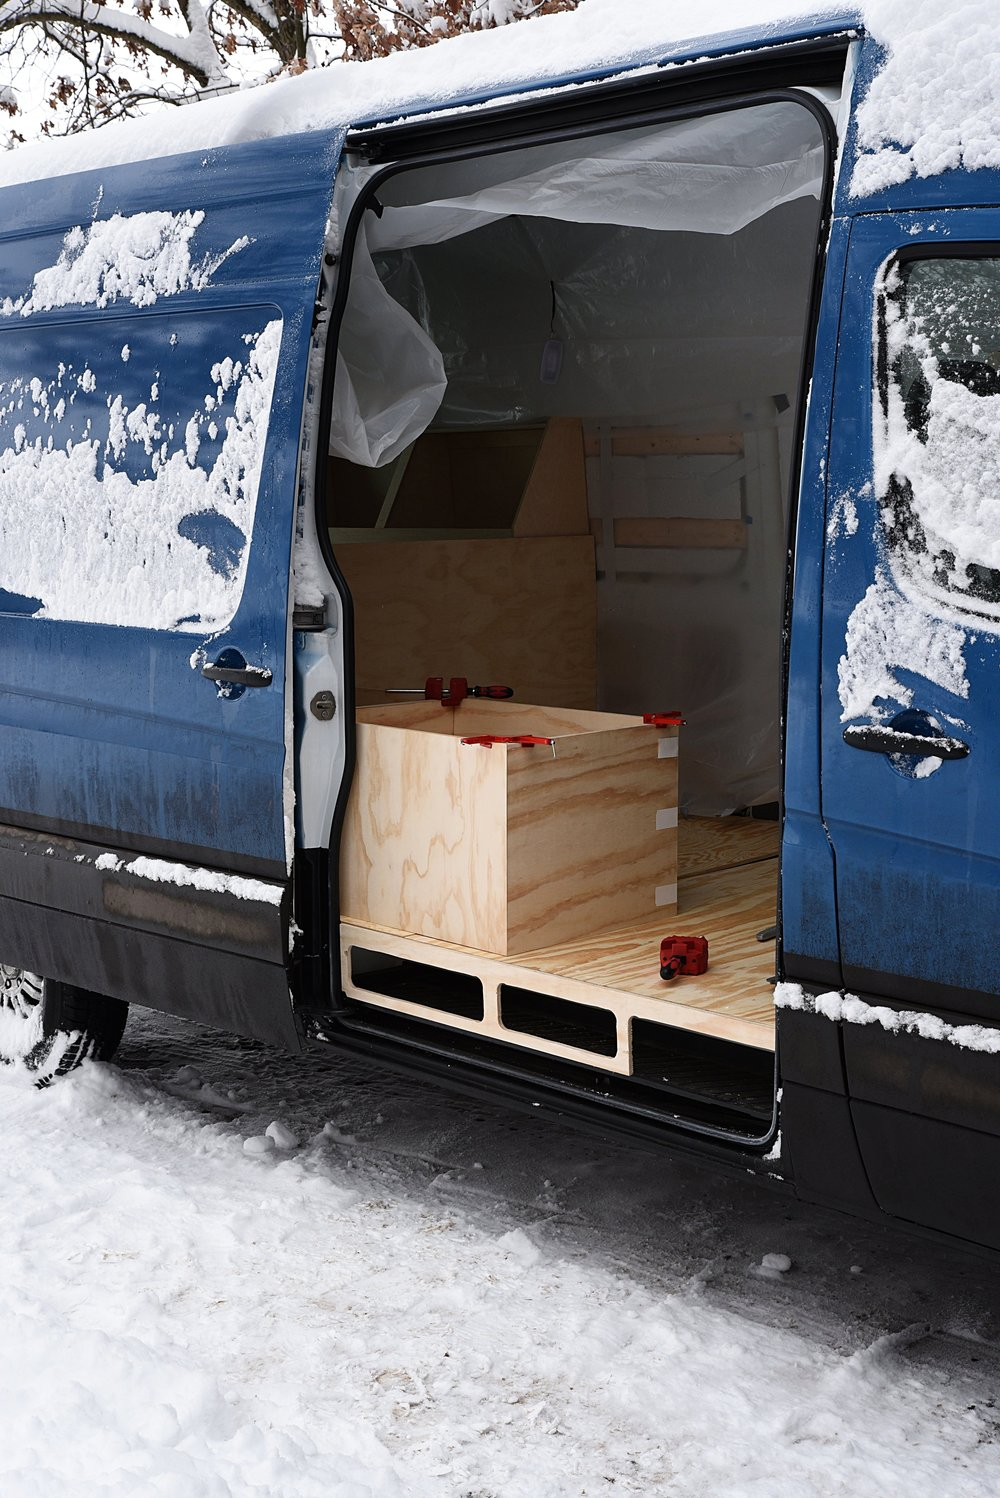 We test fit the bench within the van, and we also test fit the fridge within the bench.